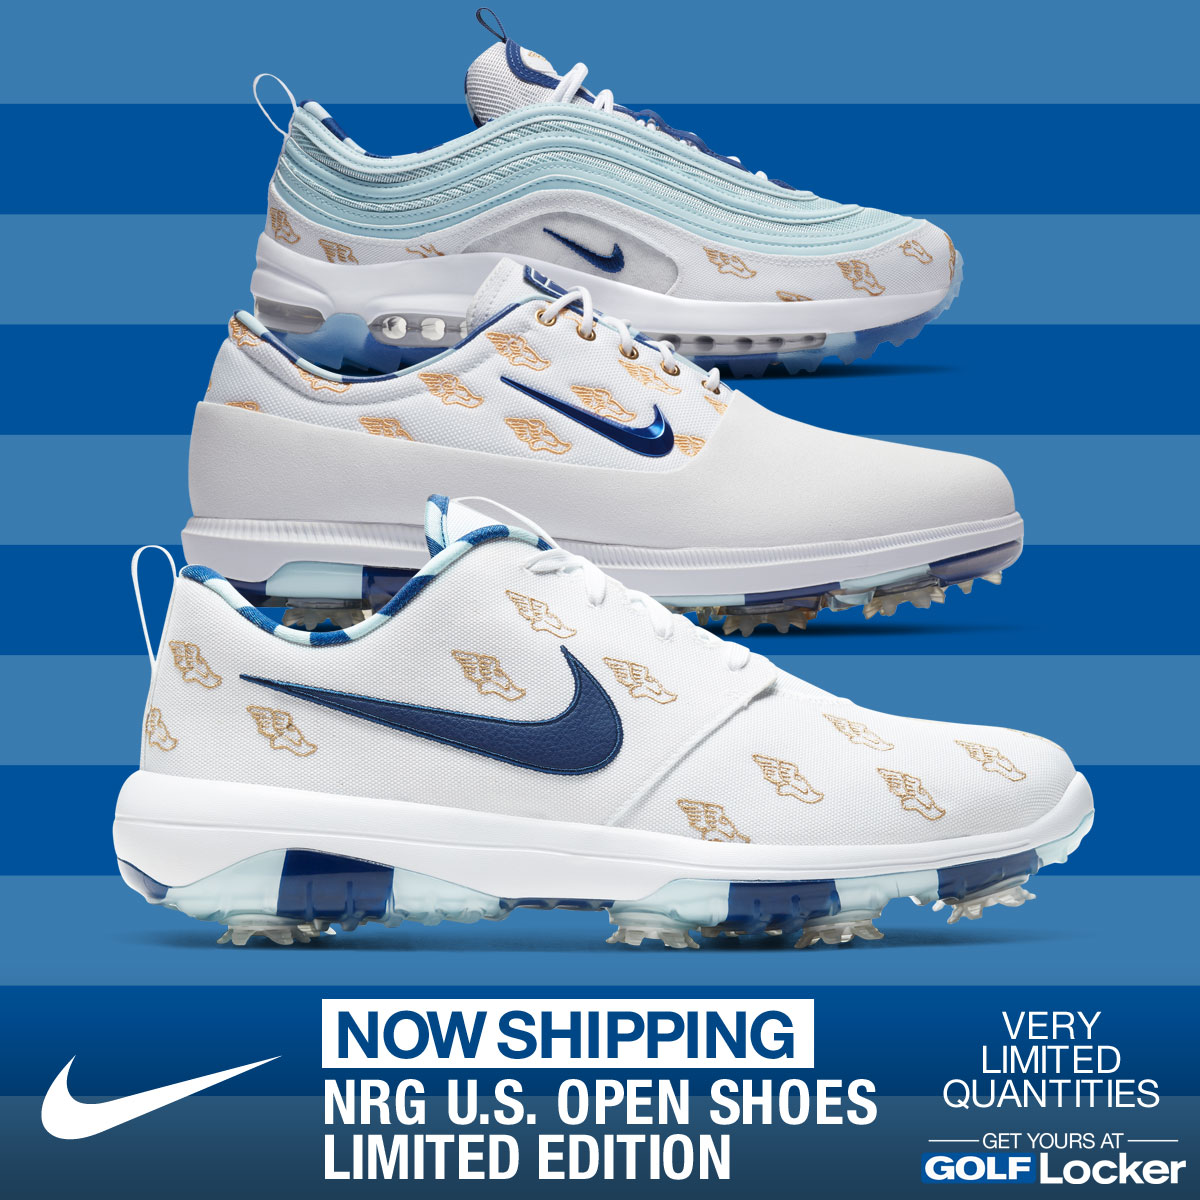 Now Shipping - Nike Limited Edition U.S. Open Golf Shoes